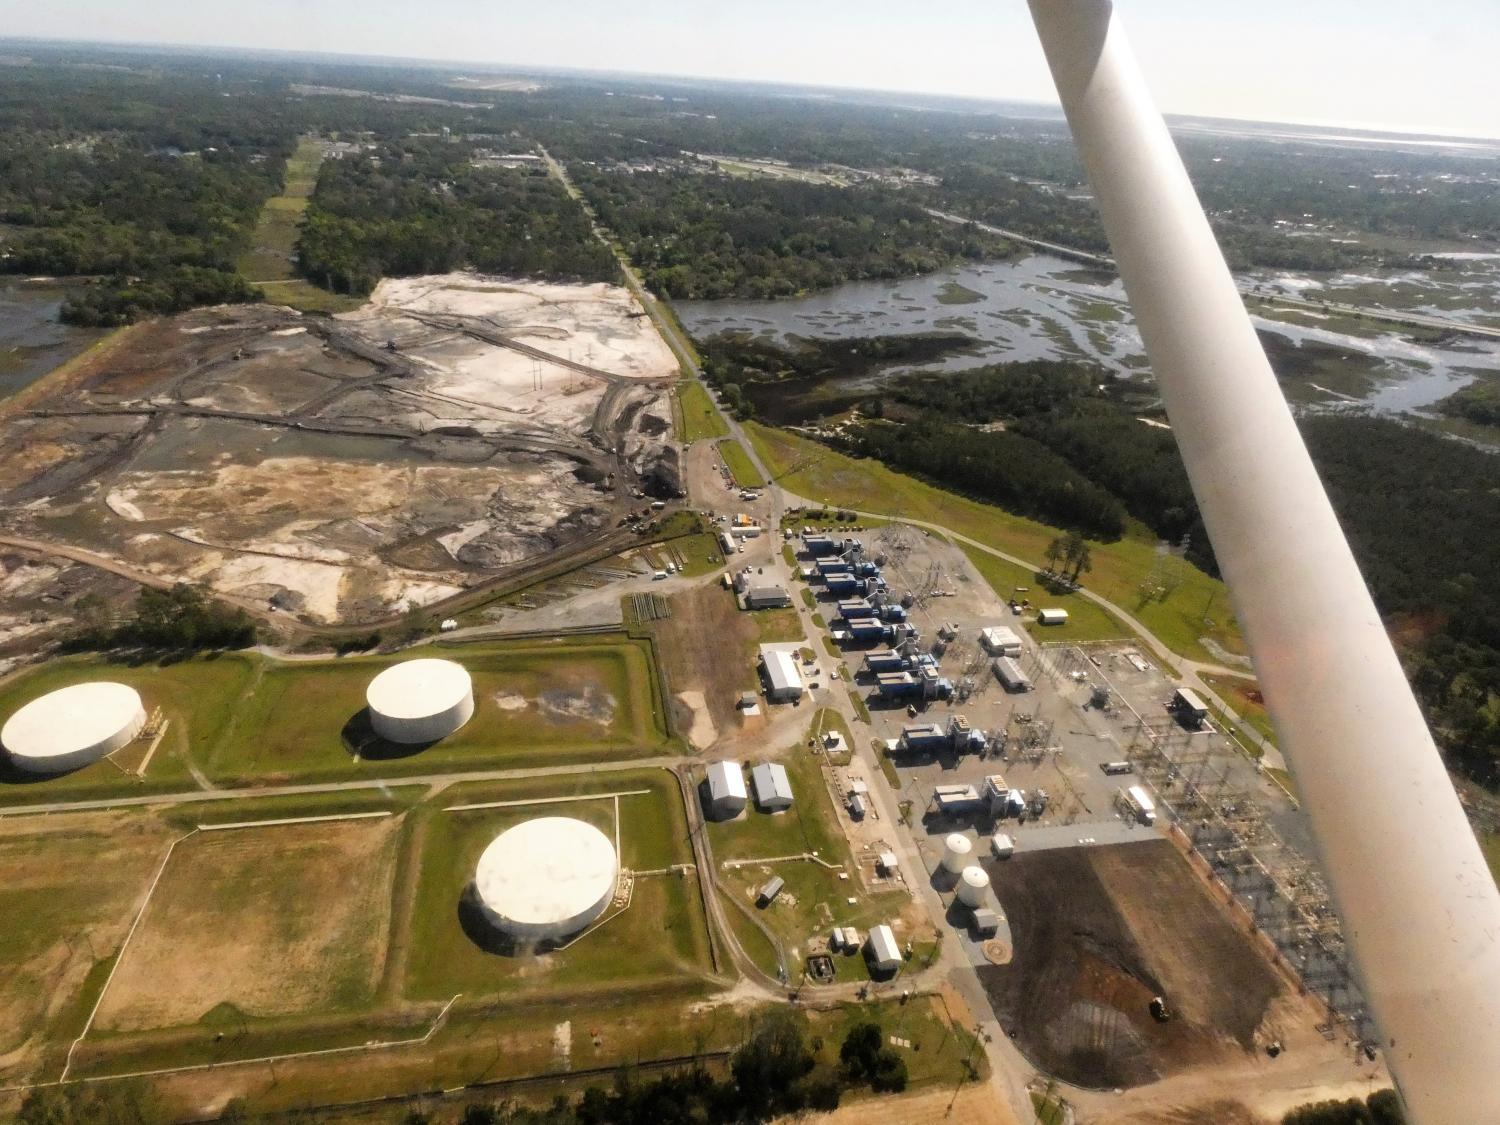 The impact that coal ash disposal has on groundwater supplies provides the businesses community with yet another reason to demand safer, more sustainable sources of electricity from their local utilities.